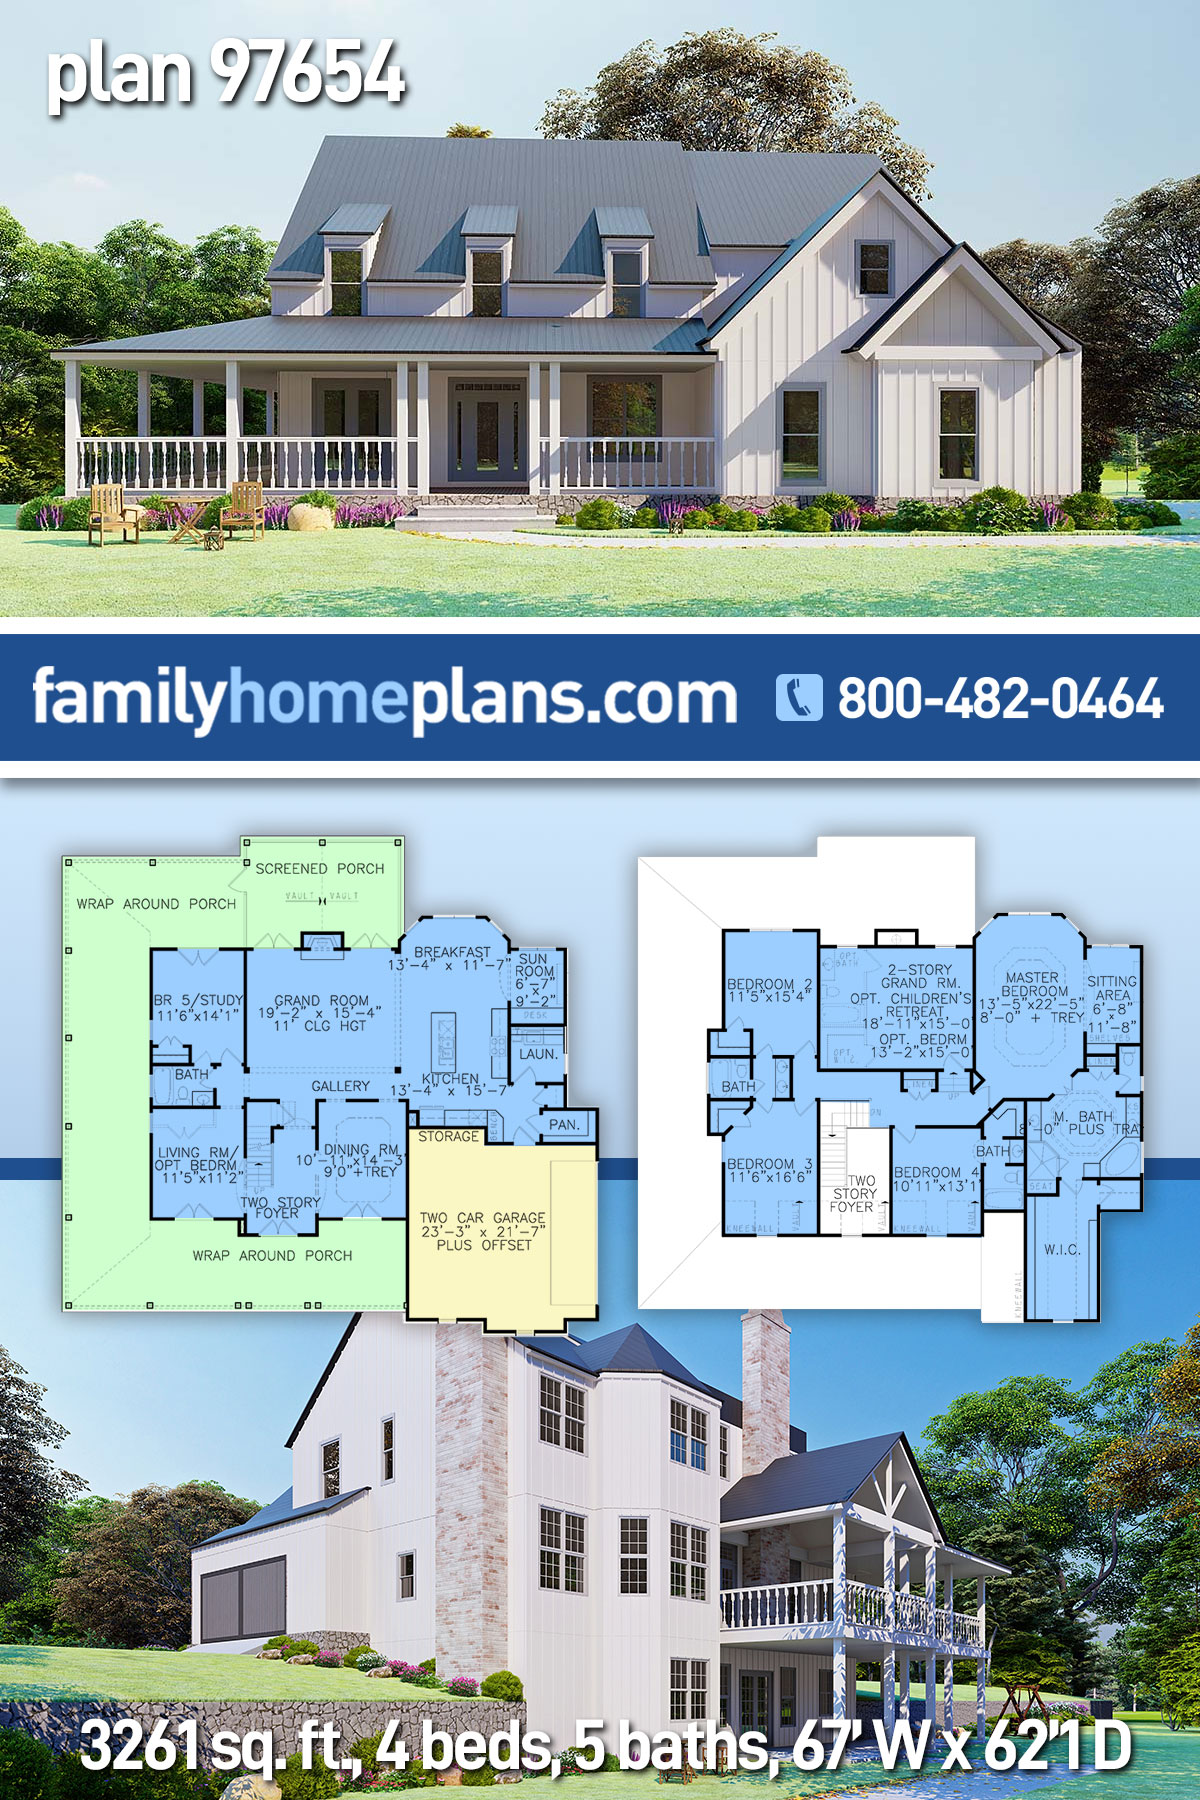 Country, Modern Farmhouse, Ranch, Southern House Plan 97654 with 4 Beds , 5 Baths , 2 Car Garage